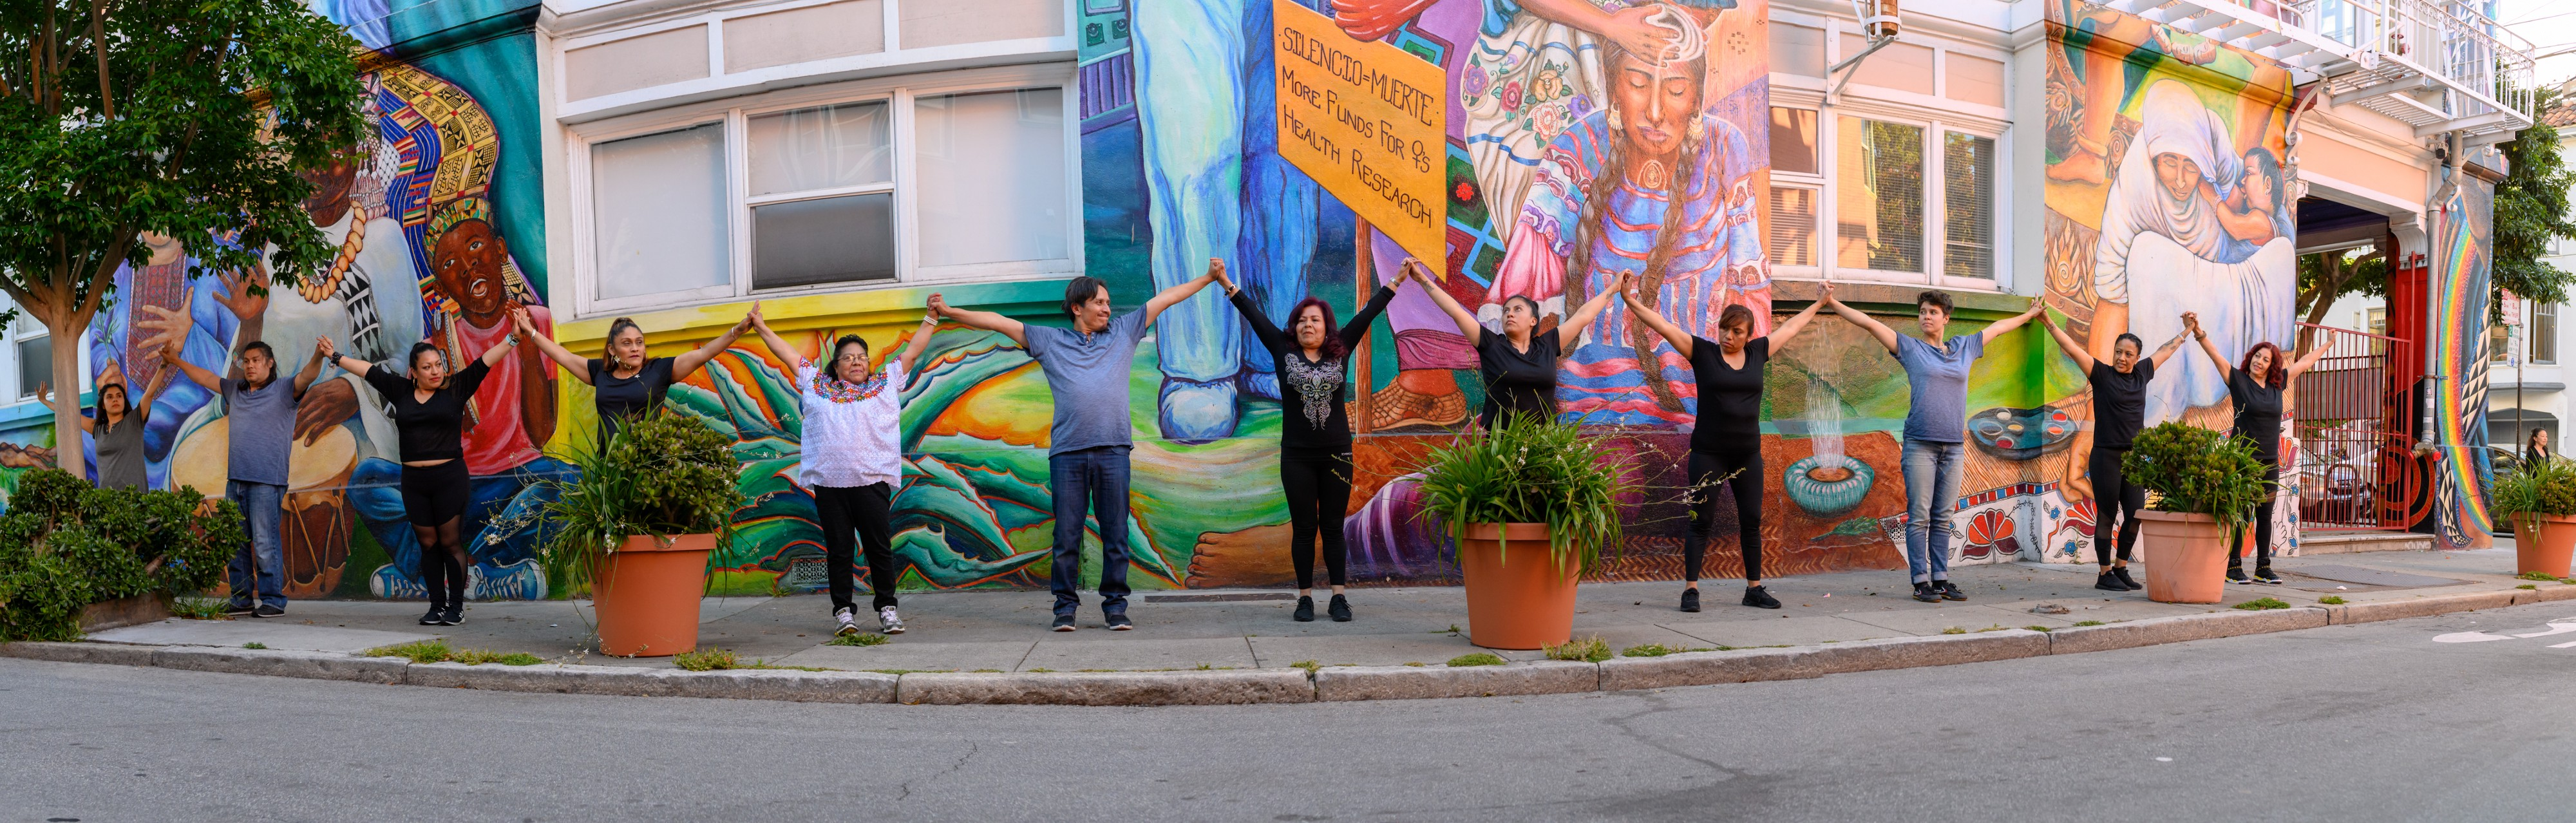 Group of performers on a sidewalk in front of a street mural holding up linked hands